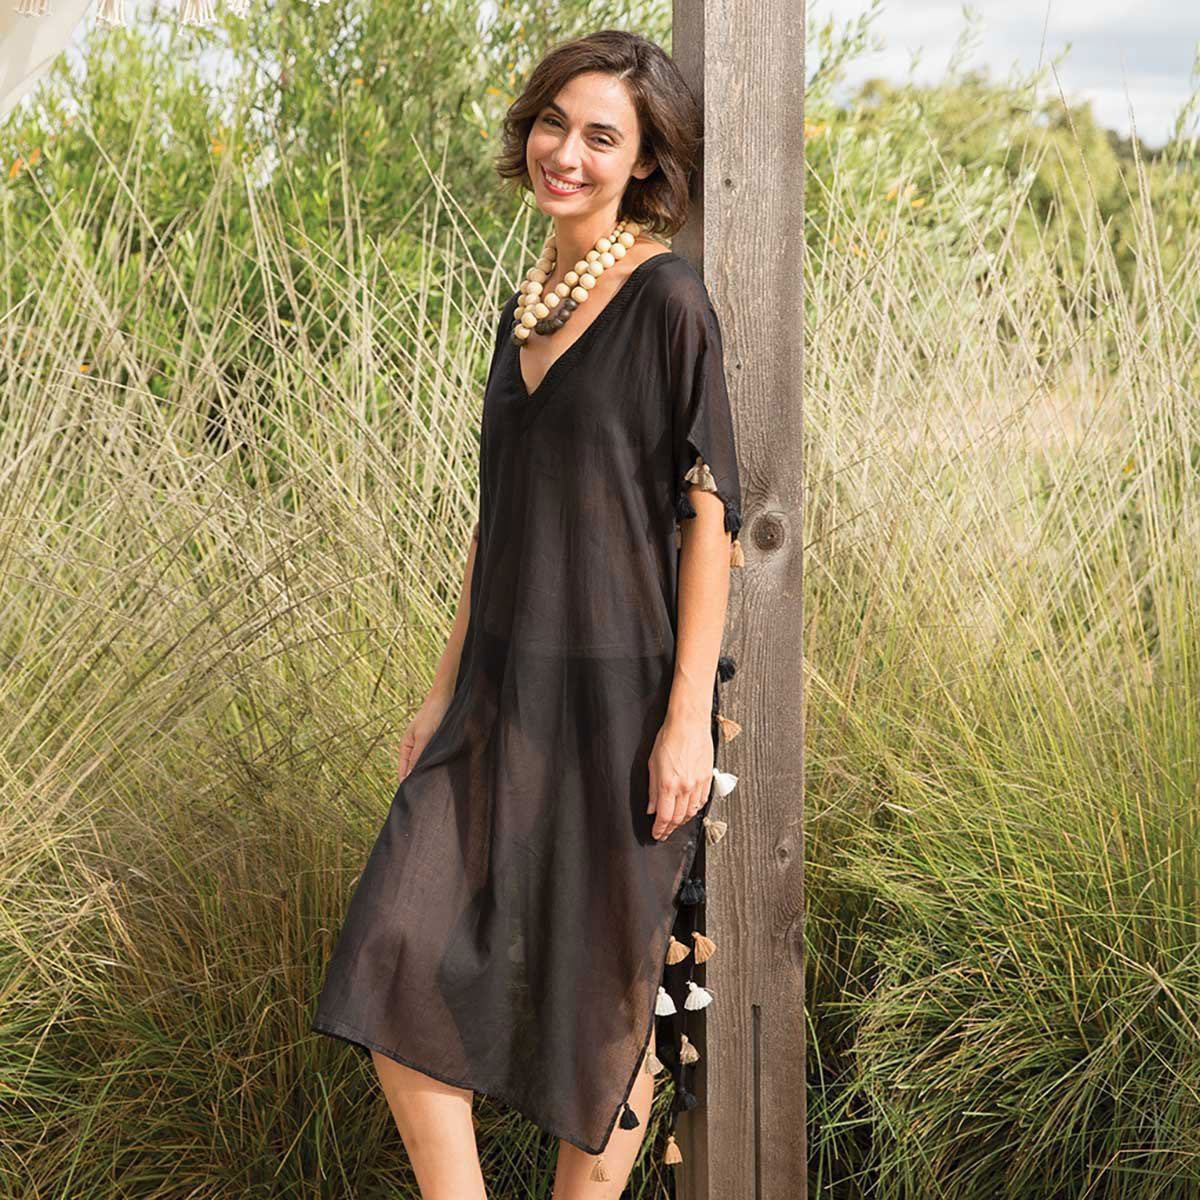 Long black tasseled kaftan - perfect bathing suit coverup!